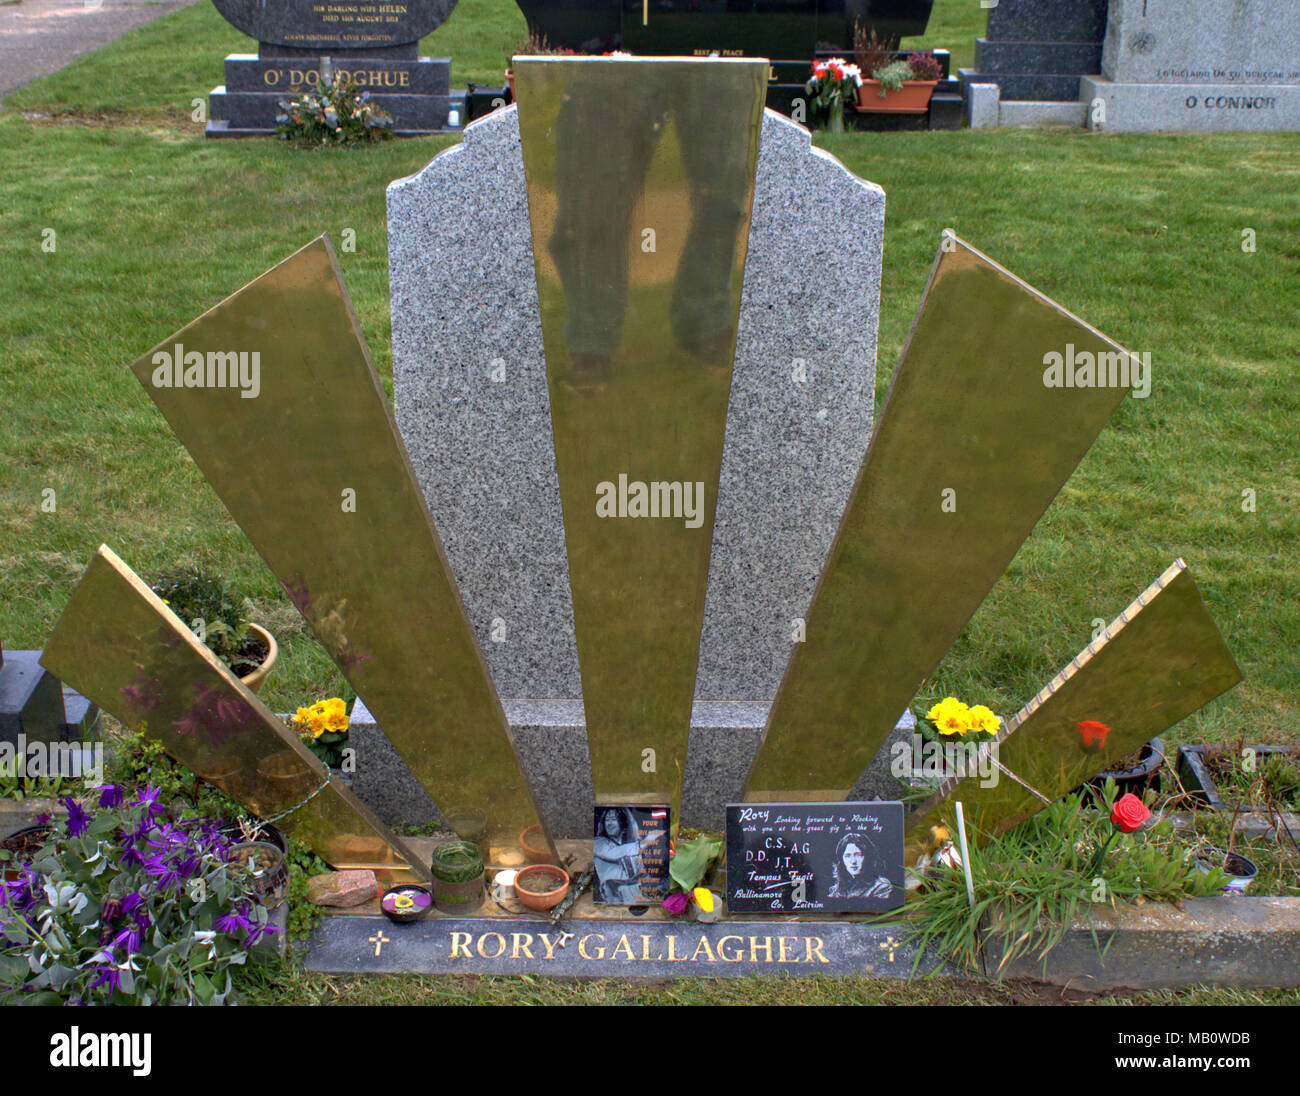 william-rory-gallagher-was-born-on-march-7th-1948-in-ballyshannon-and-died-1995-in-london-buried-in-st-olivers-cemetery-ballincollig-ireland-MB0WDB.jpg